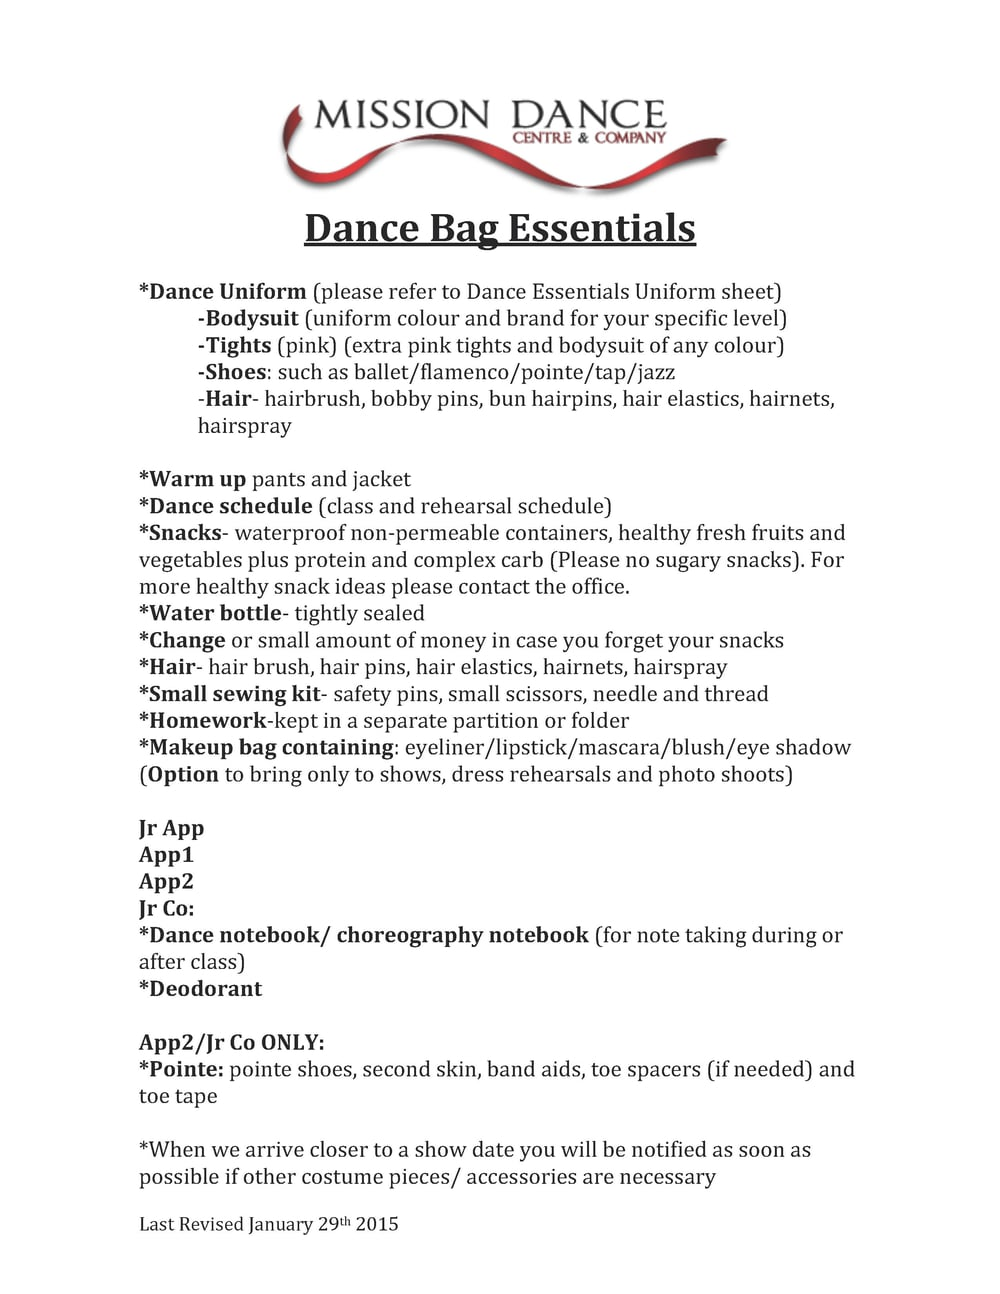 2014-2015-Dance-Bag-Esssentials-and-Uniform1[2].jpg